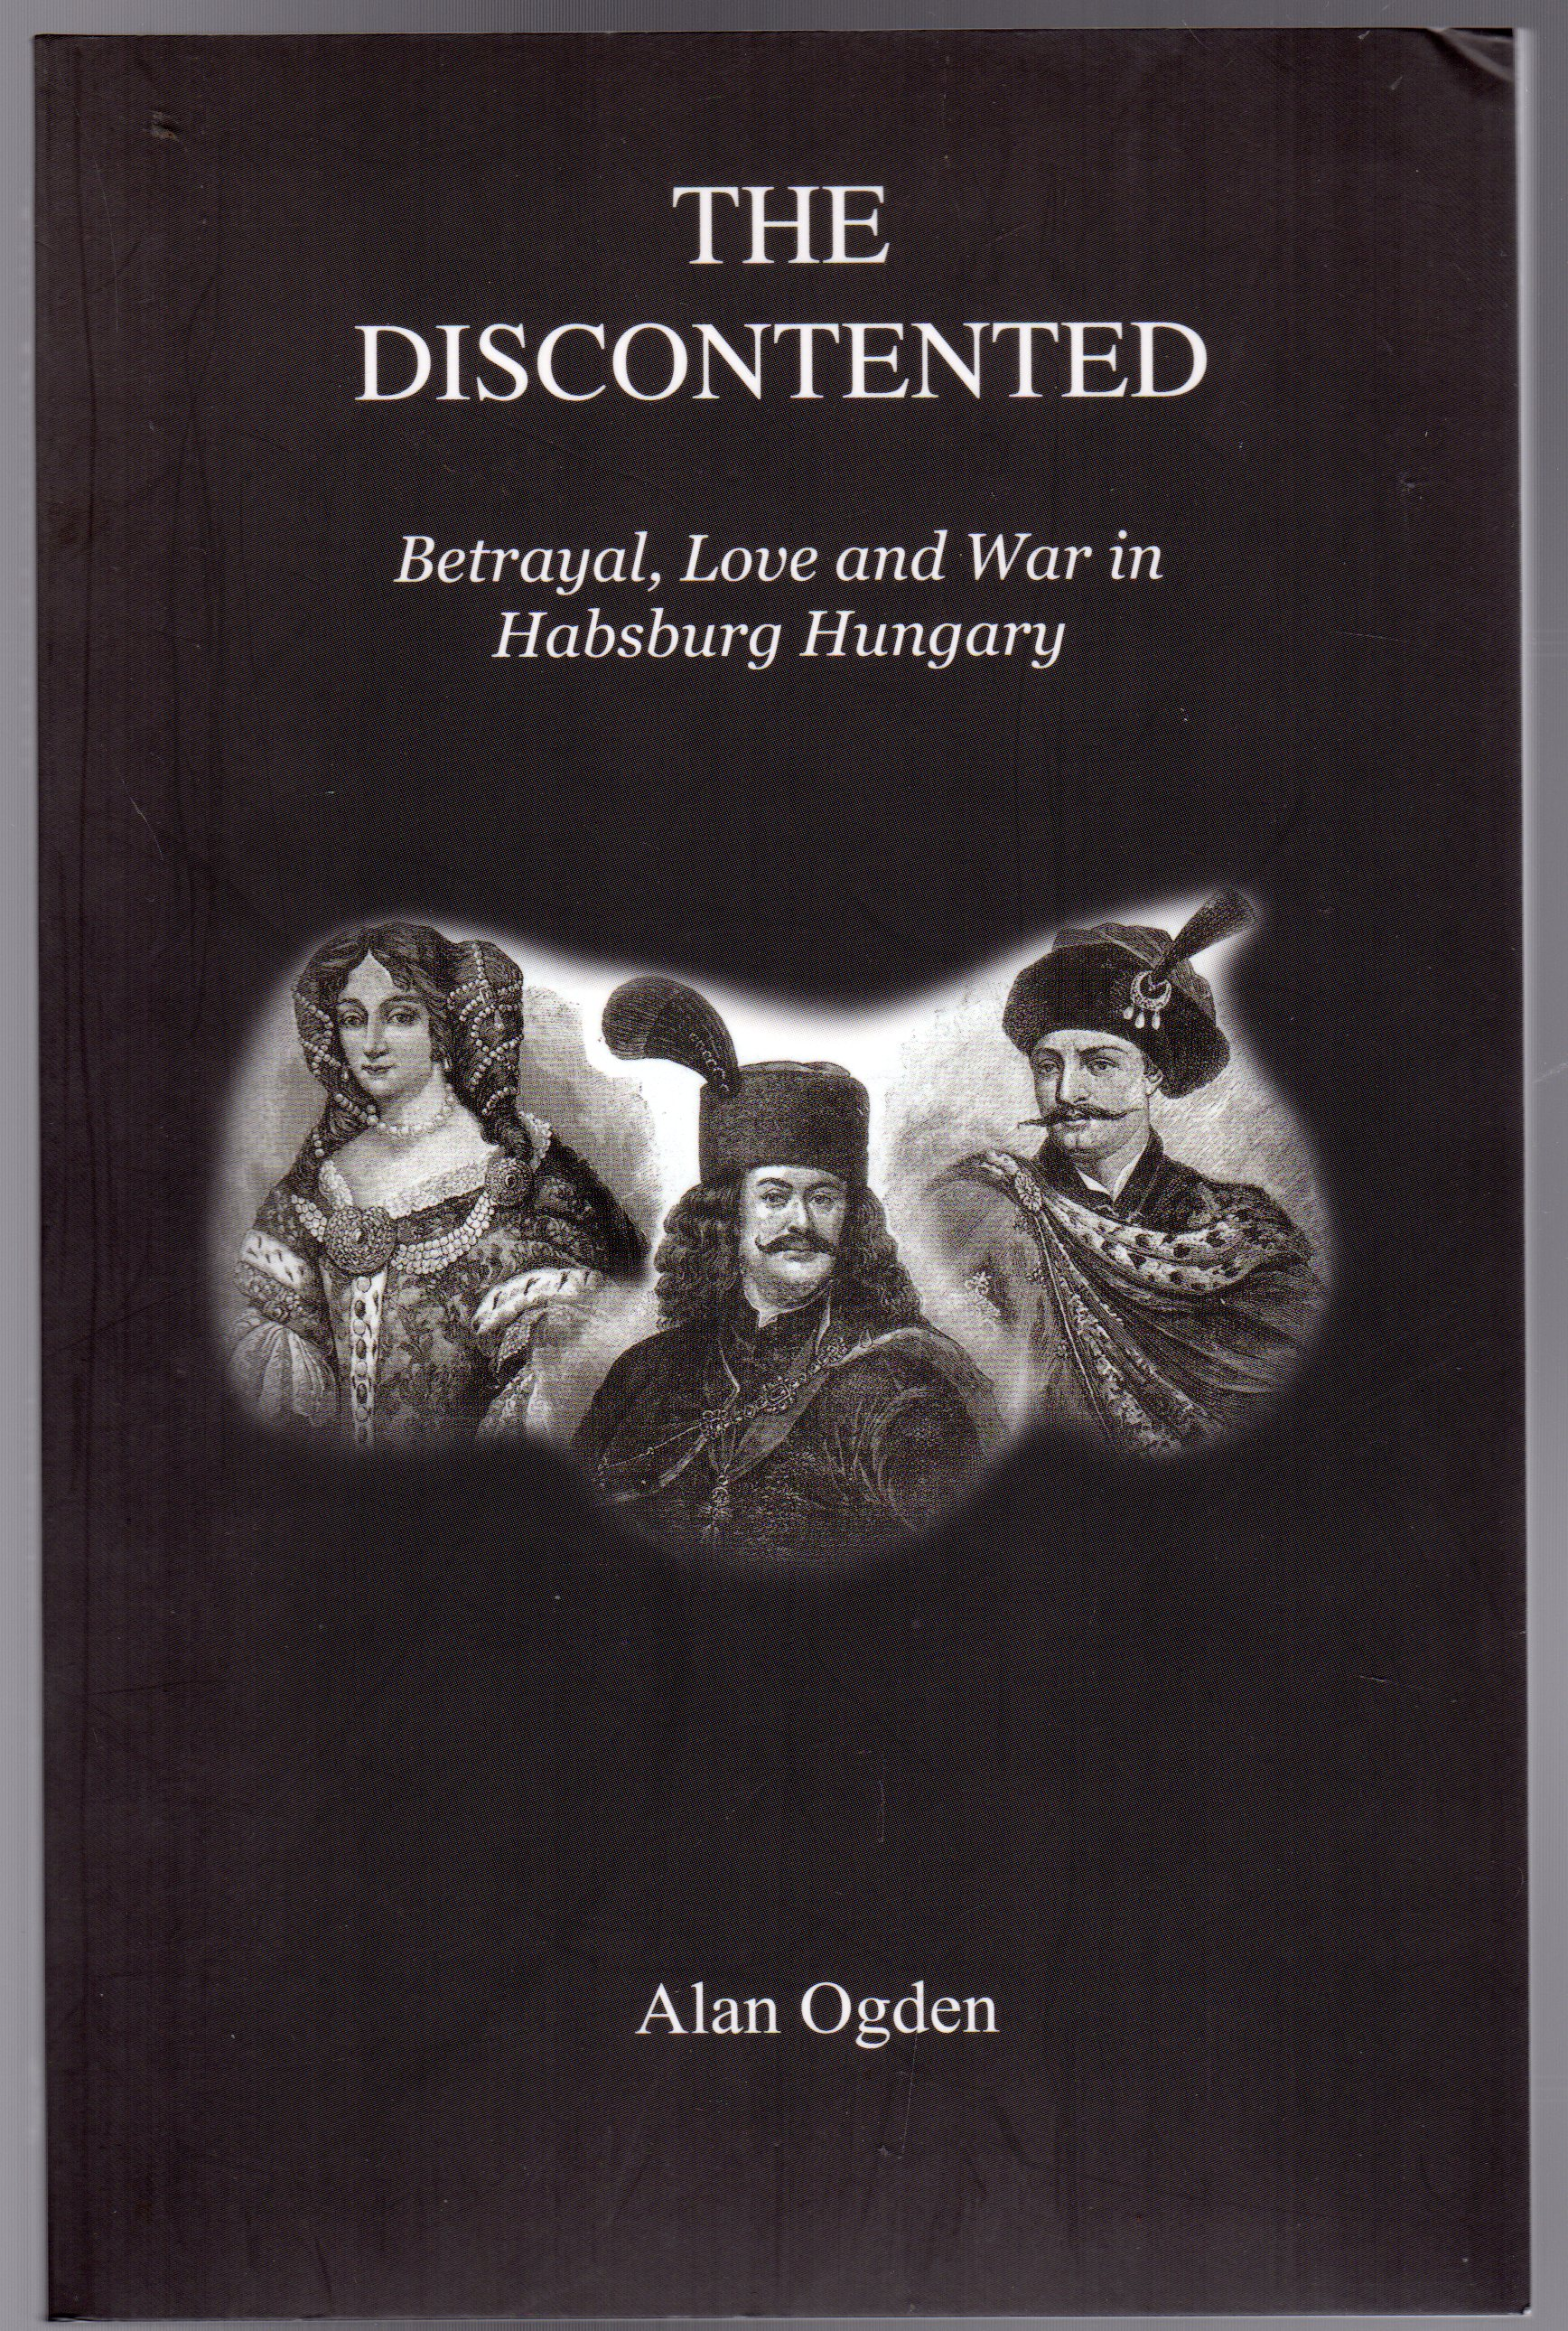 Image for The Discontented : Betrayal, Love and War in Habsburg Hungary  (SIGNED COPY)